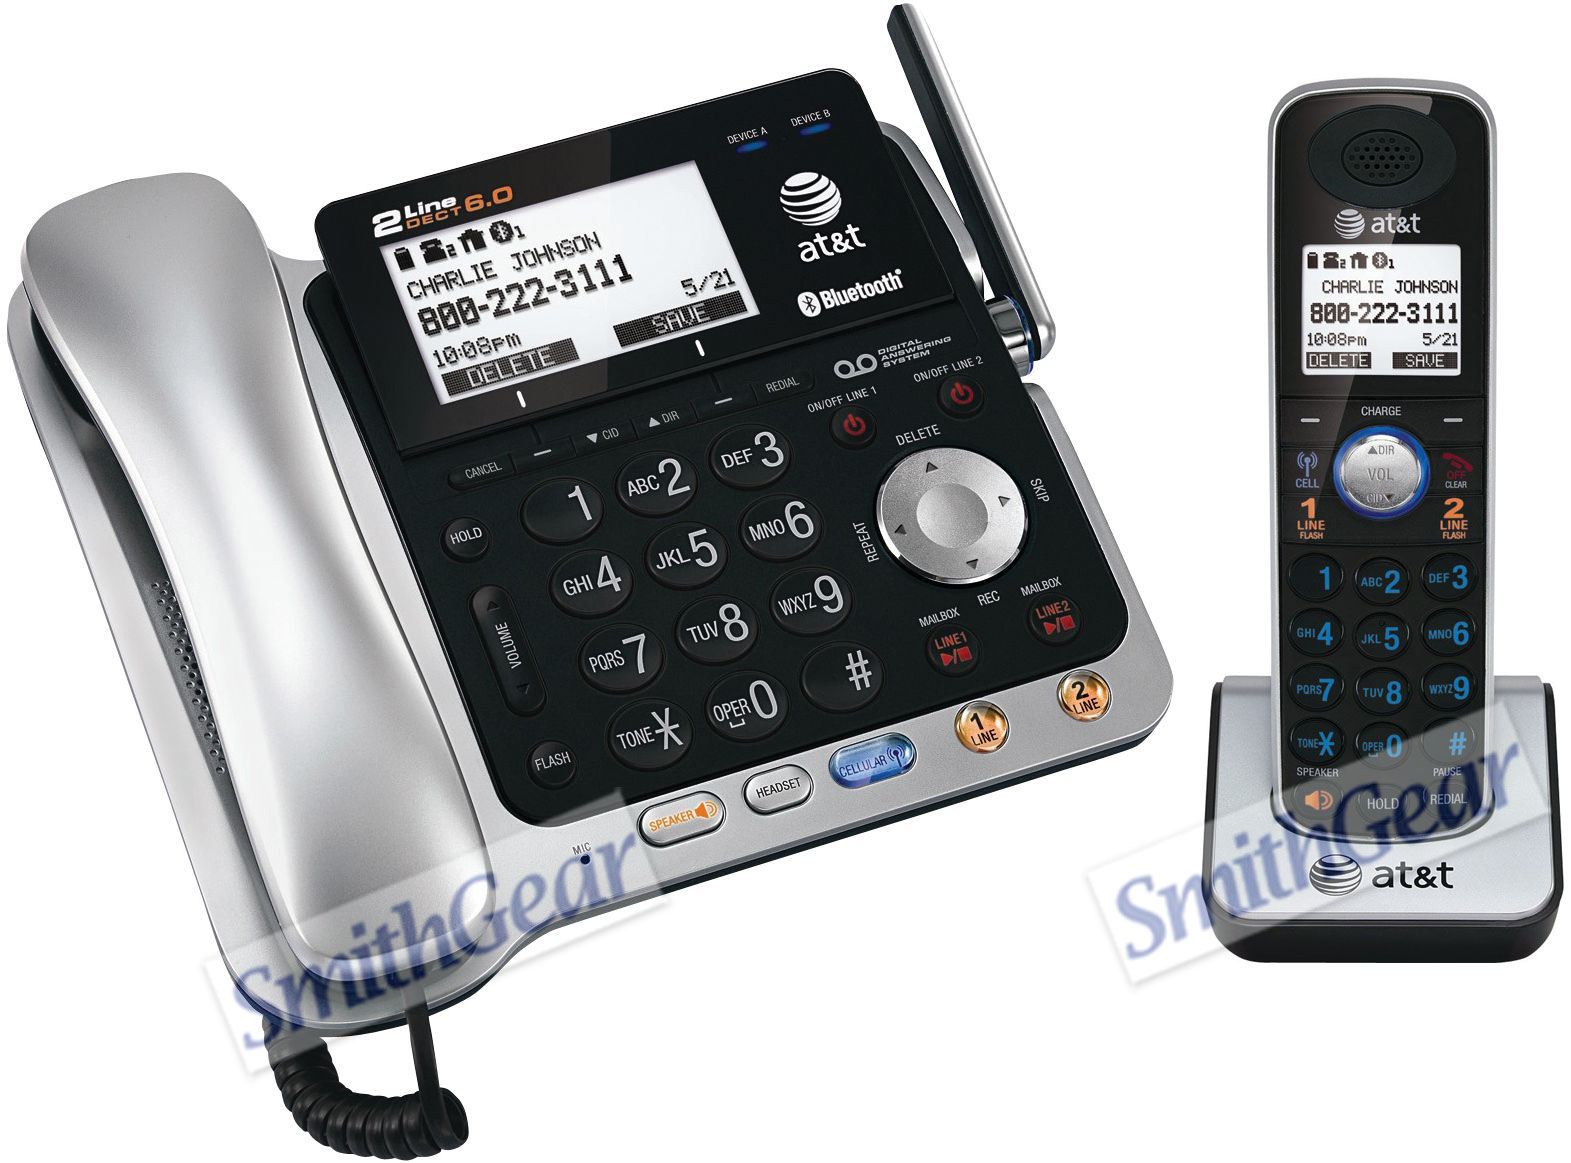 at t tl86109 2 line bluetooth cordless phone system rh smithgear com att landline phone manual online Walmart Landline Phones